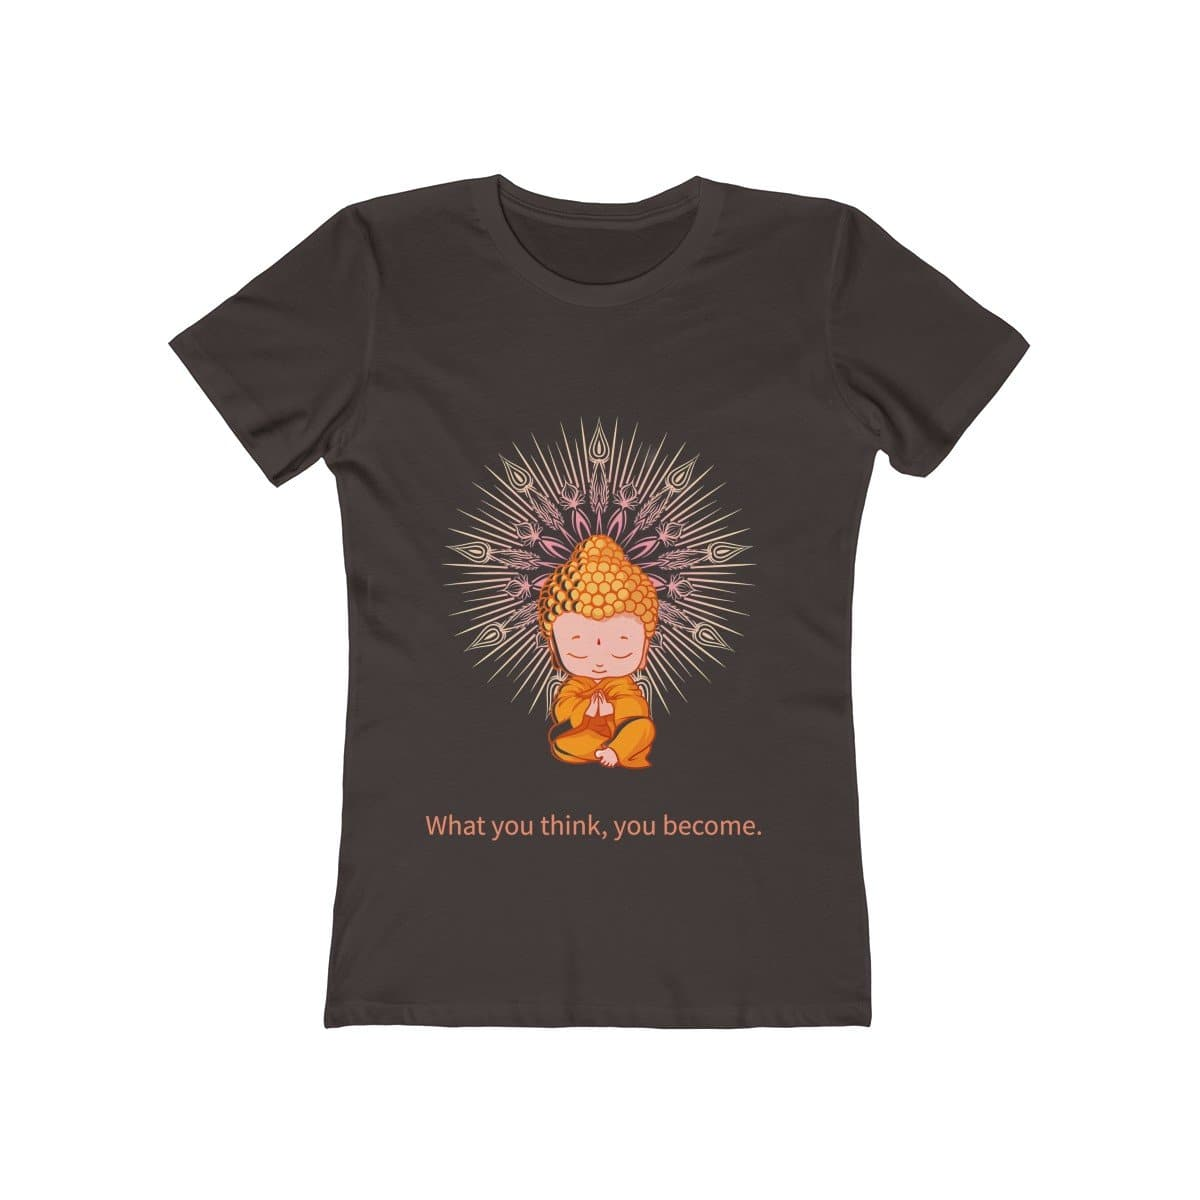 Buddha Thoughts Women's Tee - Sutra Wear